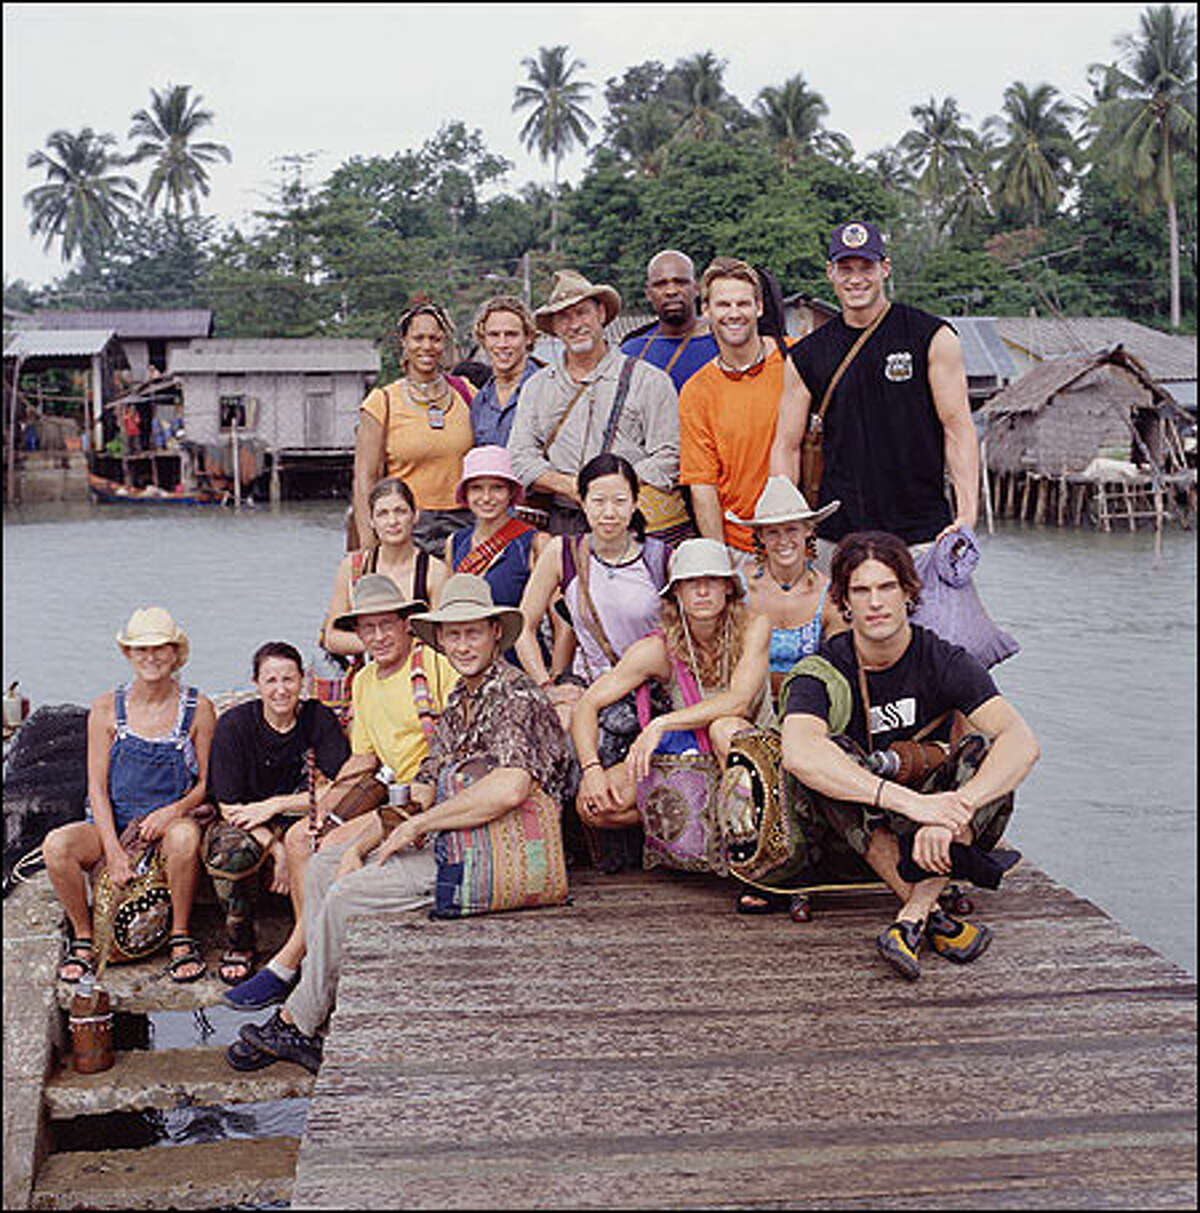 The Survivor: Thailand castaways: (top l-r) Ghandia Johnson, Jed Hildebrand, Jake Billingsley, Ted Rogers, Jr., Brian Heidik, Ken Stafford, (middle l-r) Tanya Vance, Erin Collins, Shii Ann Huang, Stephanie Dill, Penny Ramsey and Robb Zbacnik. (bottom l-r) Jan Gentry, Helen Glover, Clay Jordan and John Raymond.